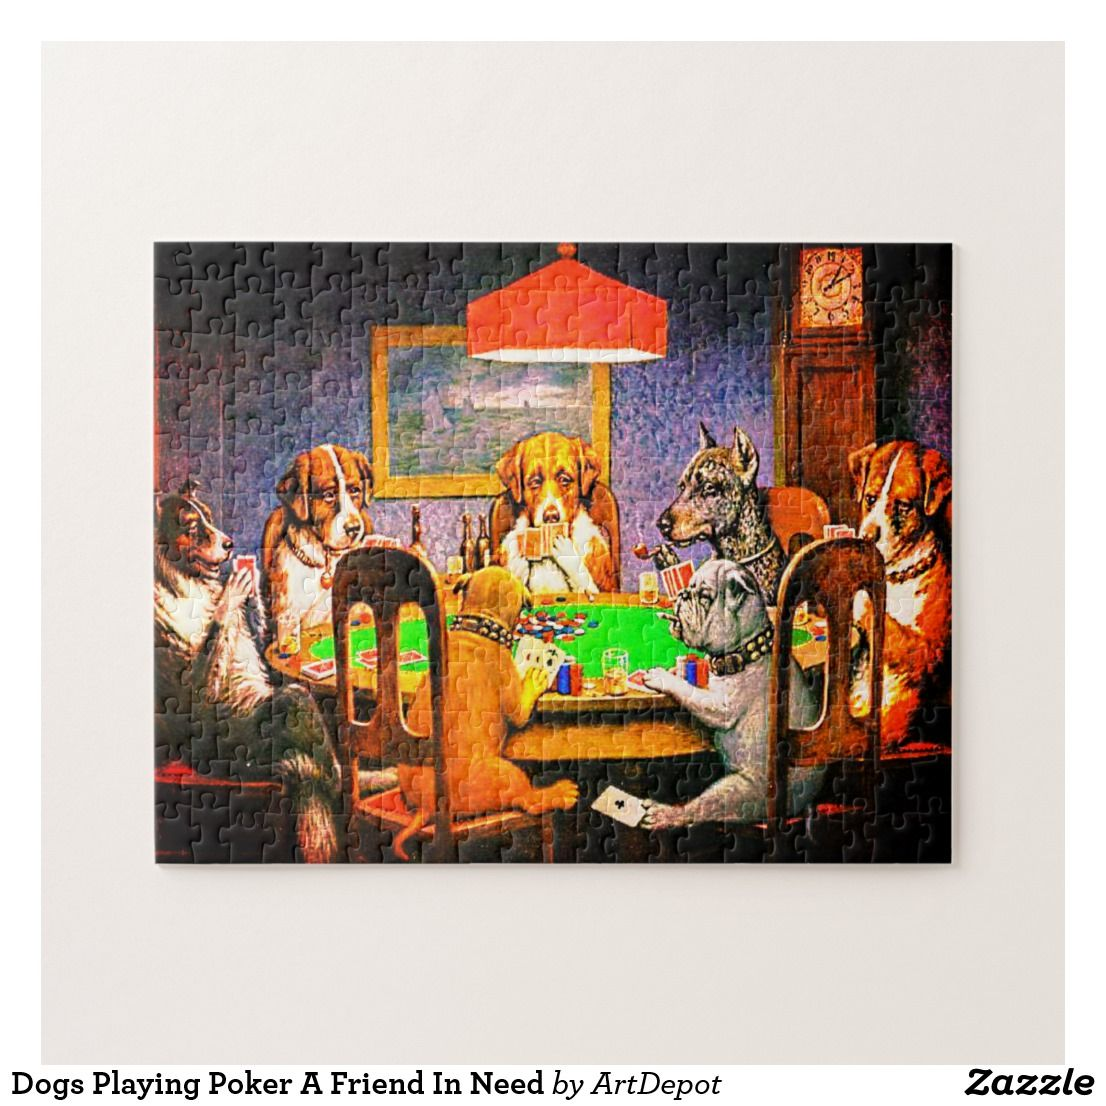 Dogs playing poker puzzle world tavern poker open 24